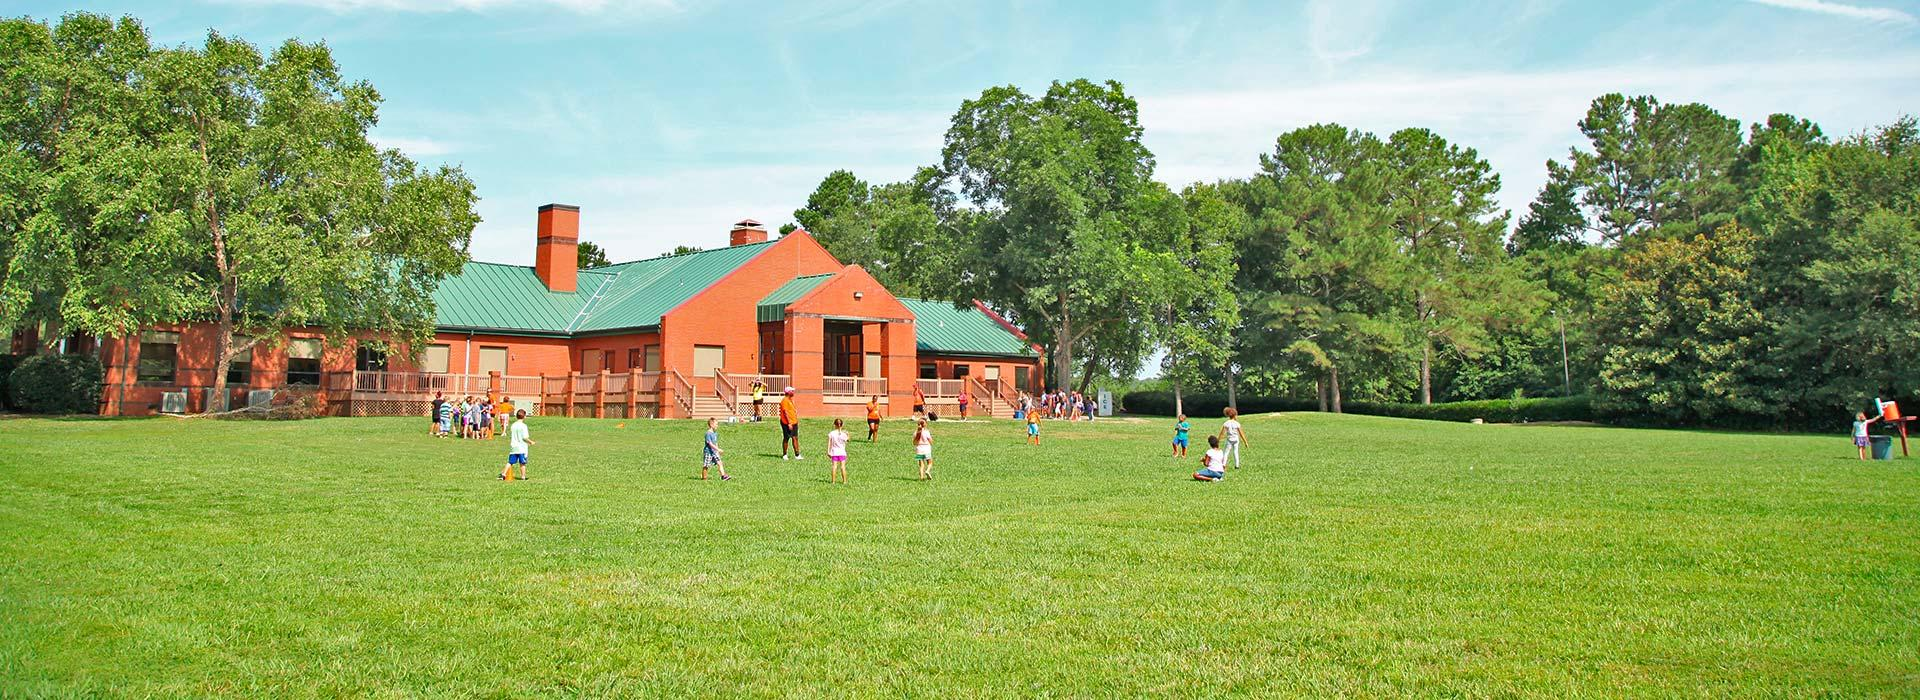 Wide shot of campers playing in field with lodge behind them at YMCA Camp Arrowhead in Suffolk, Virginia